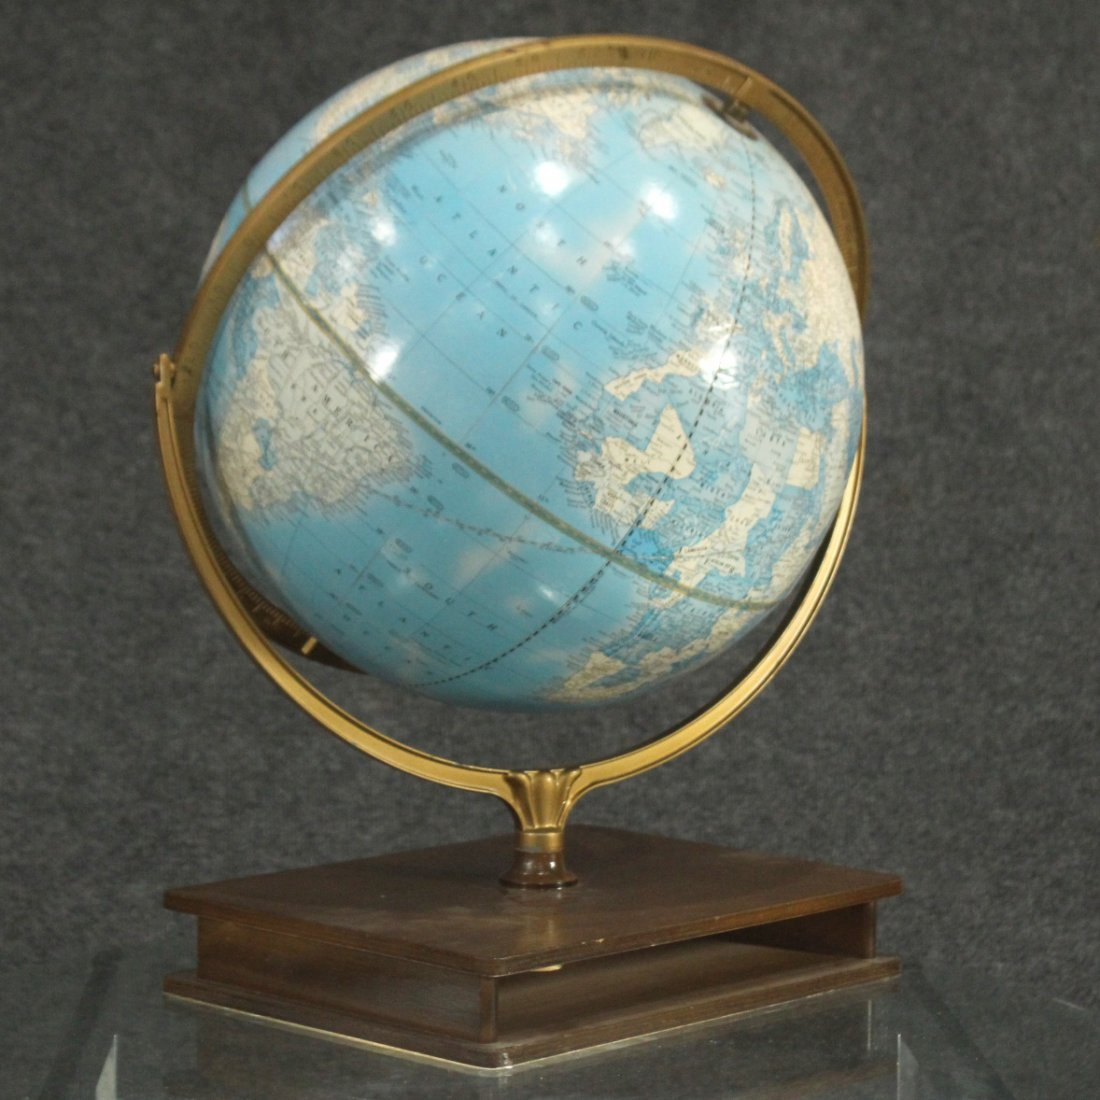 IMPERIAL WORLD GLOBE ON ATLAS BOOK BASE 16 in. Diameter